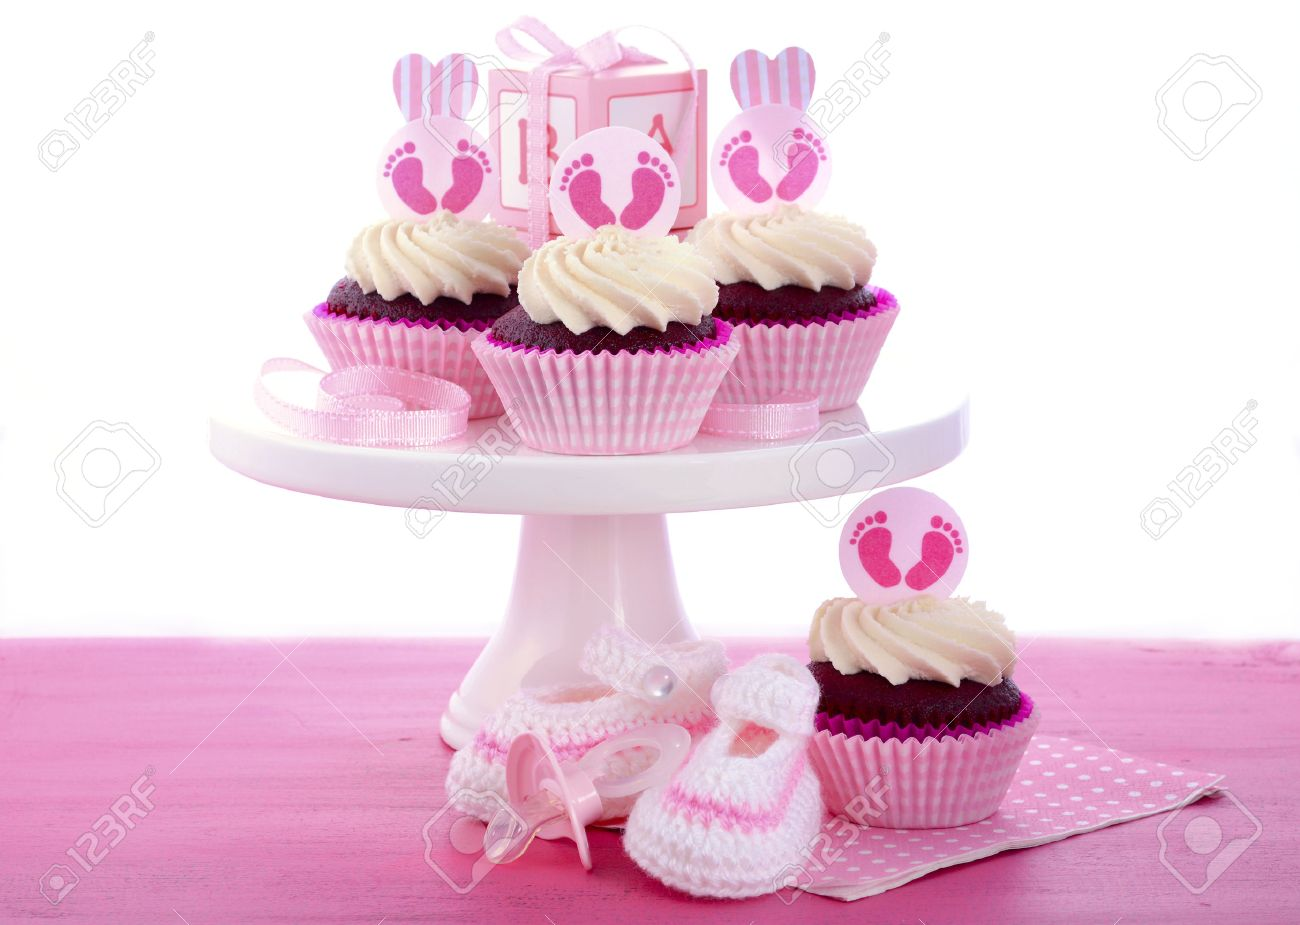 Its A Girl Baby Shower Cupcakes With Baby Feet Toppers And Decorations